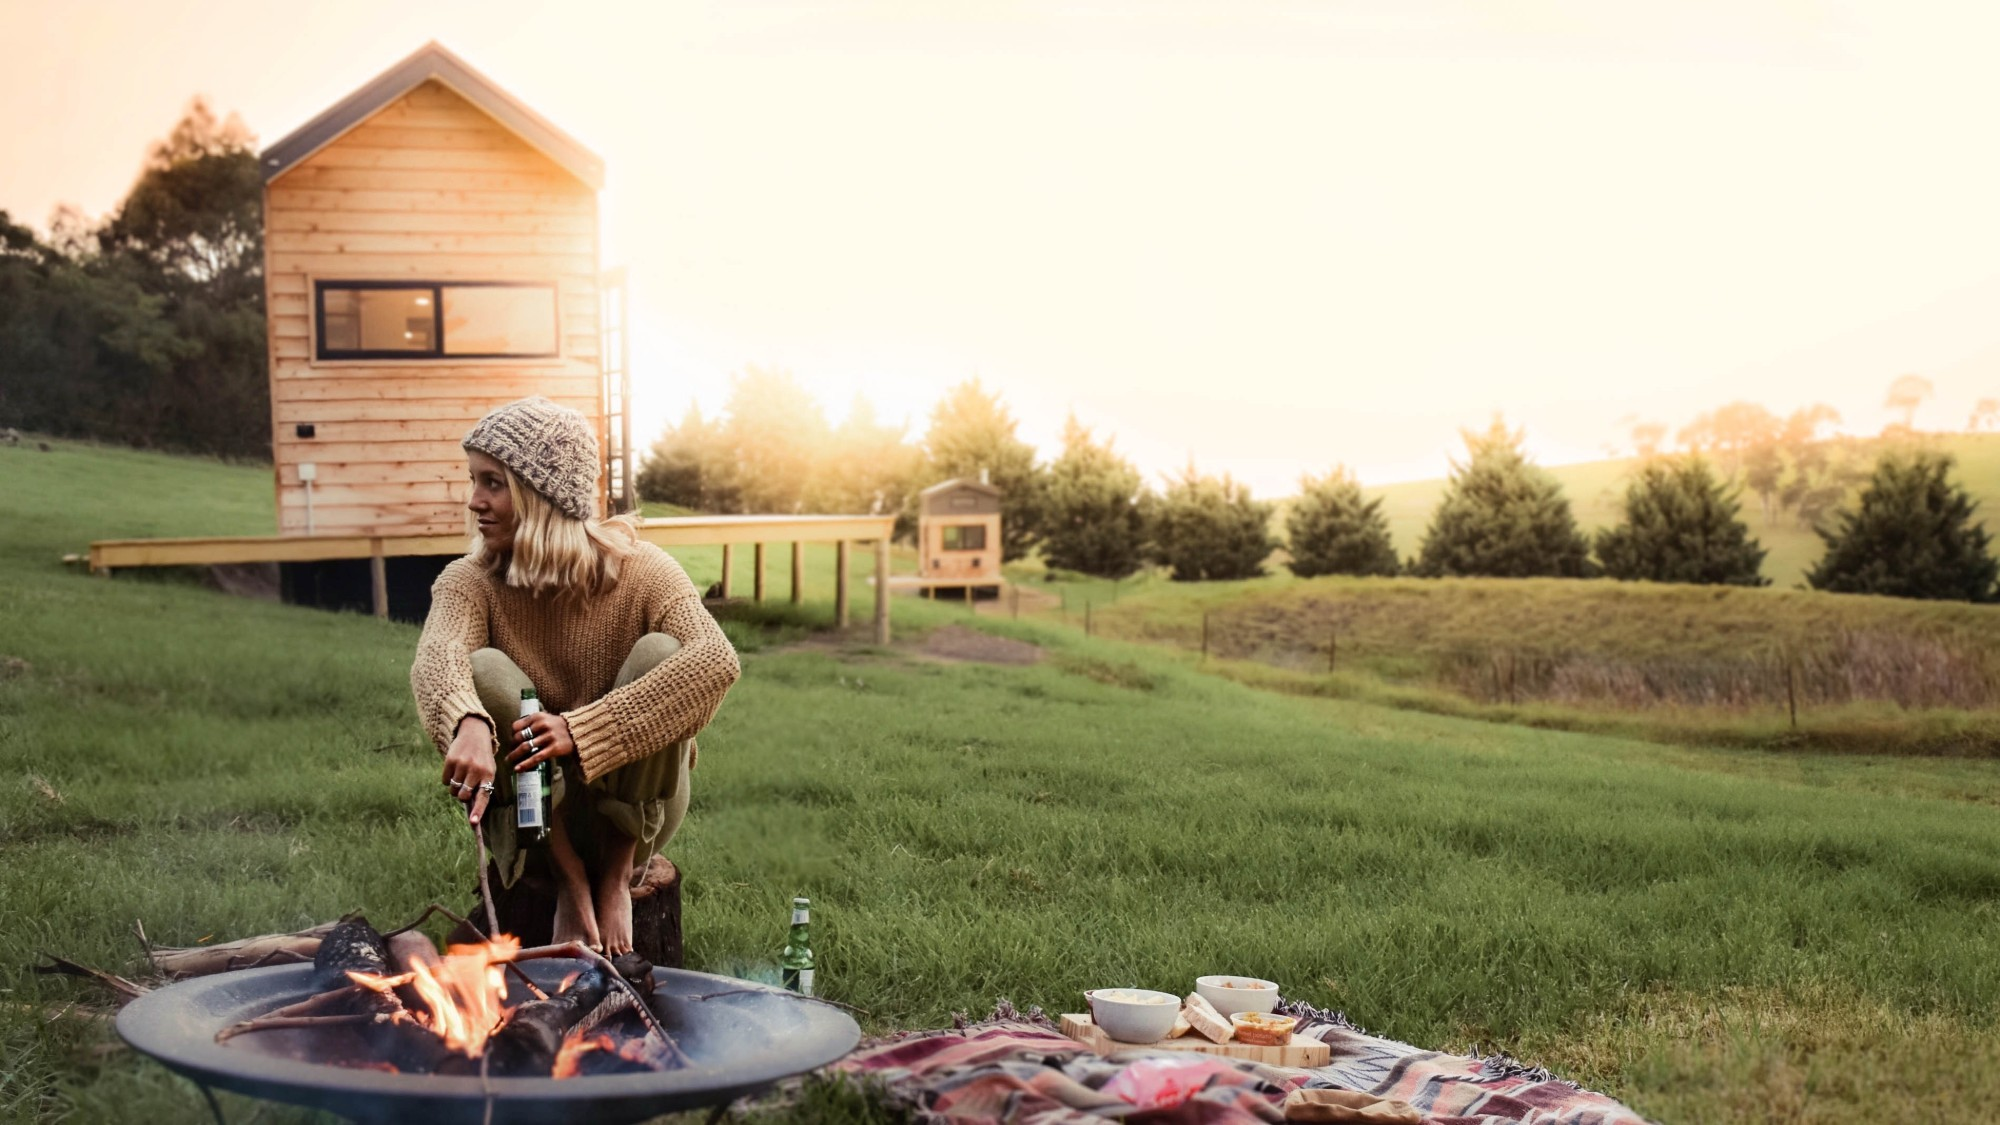 Woman roasts marshmallow on fire, there are two tiny houses behind her in a field.